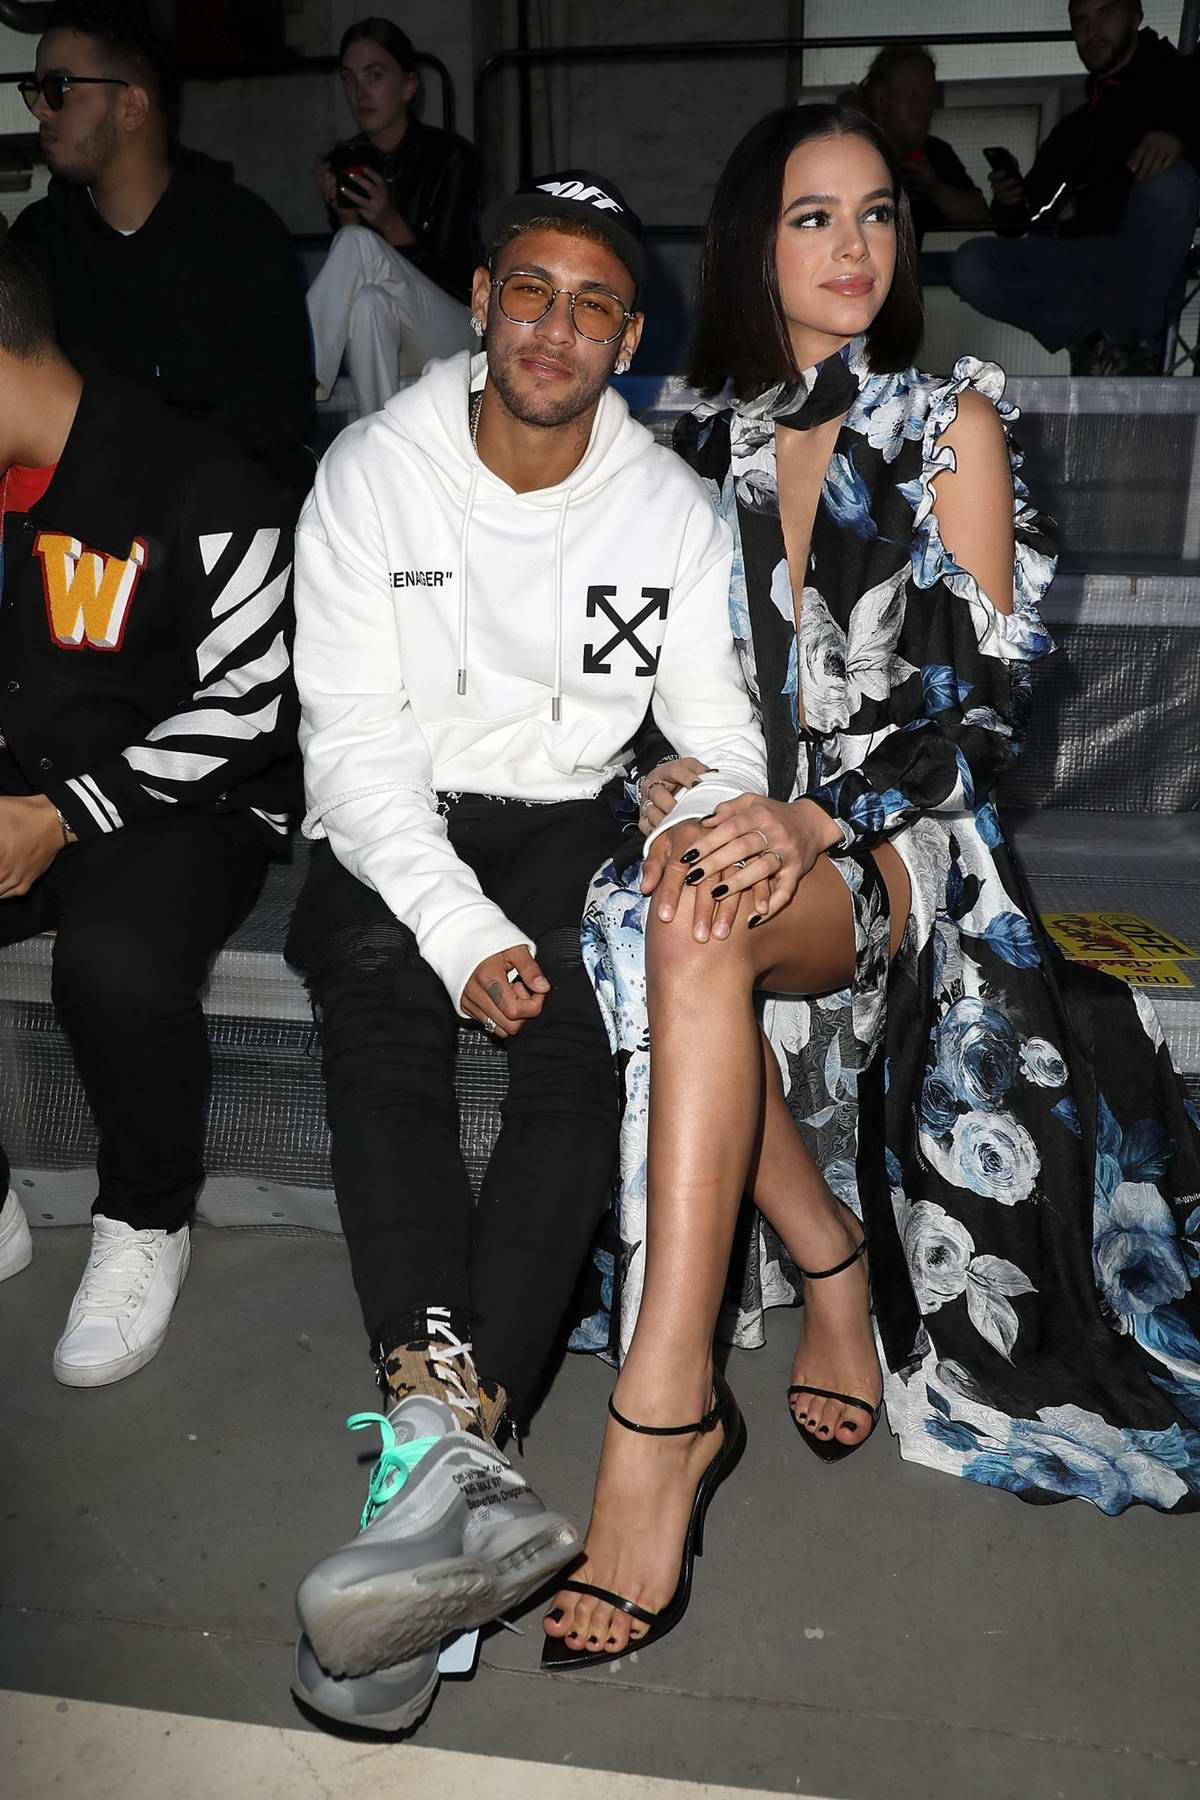 Bruna Marquezine and Neymar attends the Off-White Show during Paris Fashion Week in Paris, France